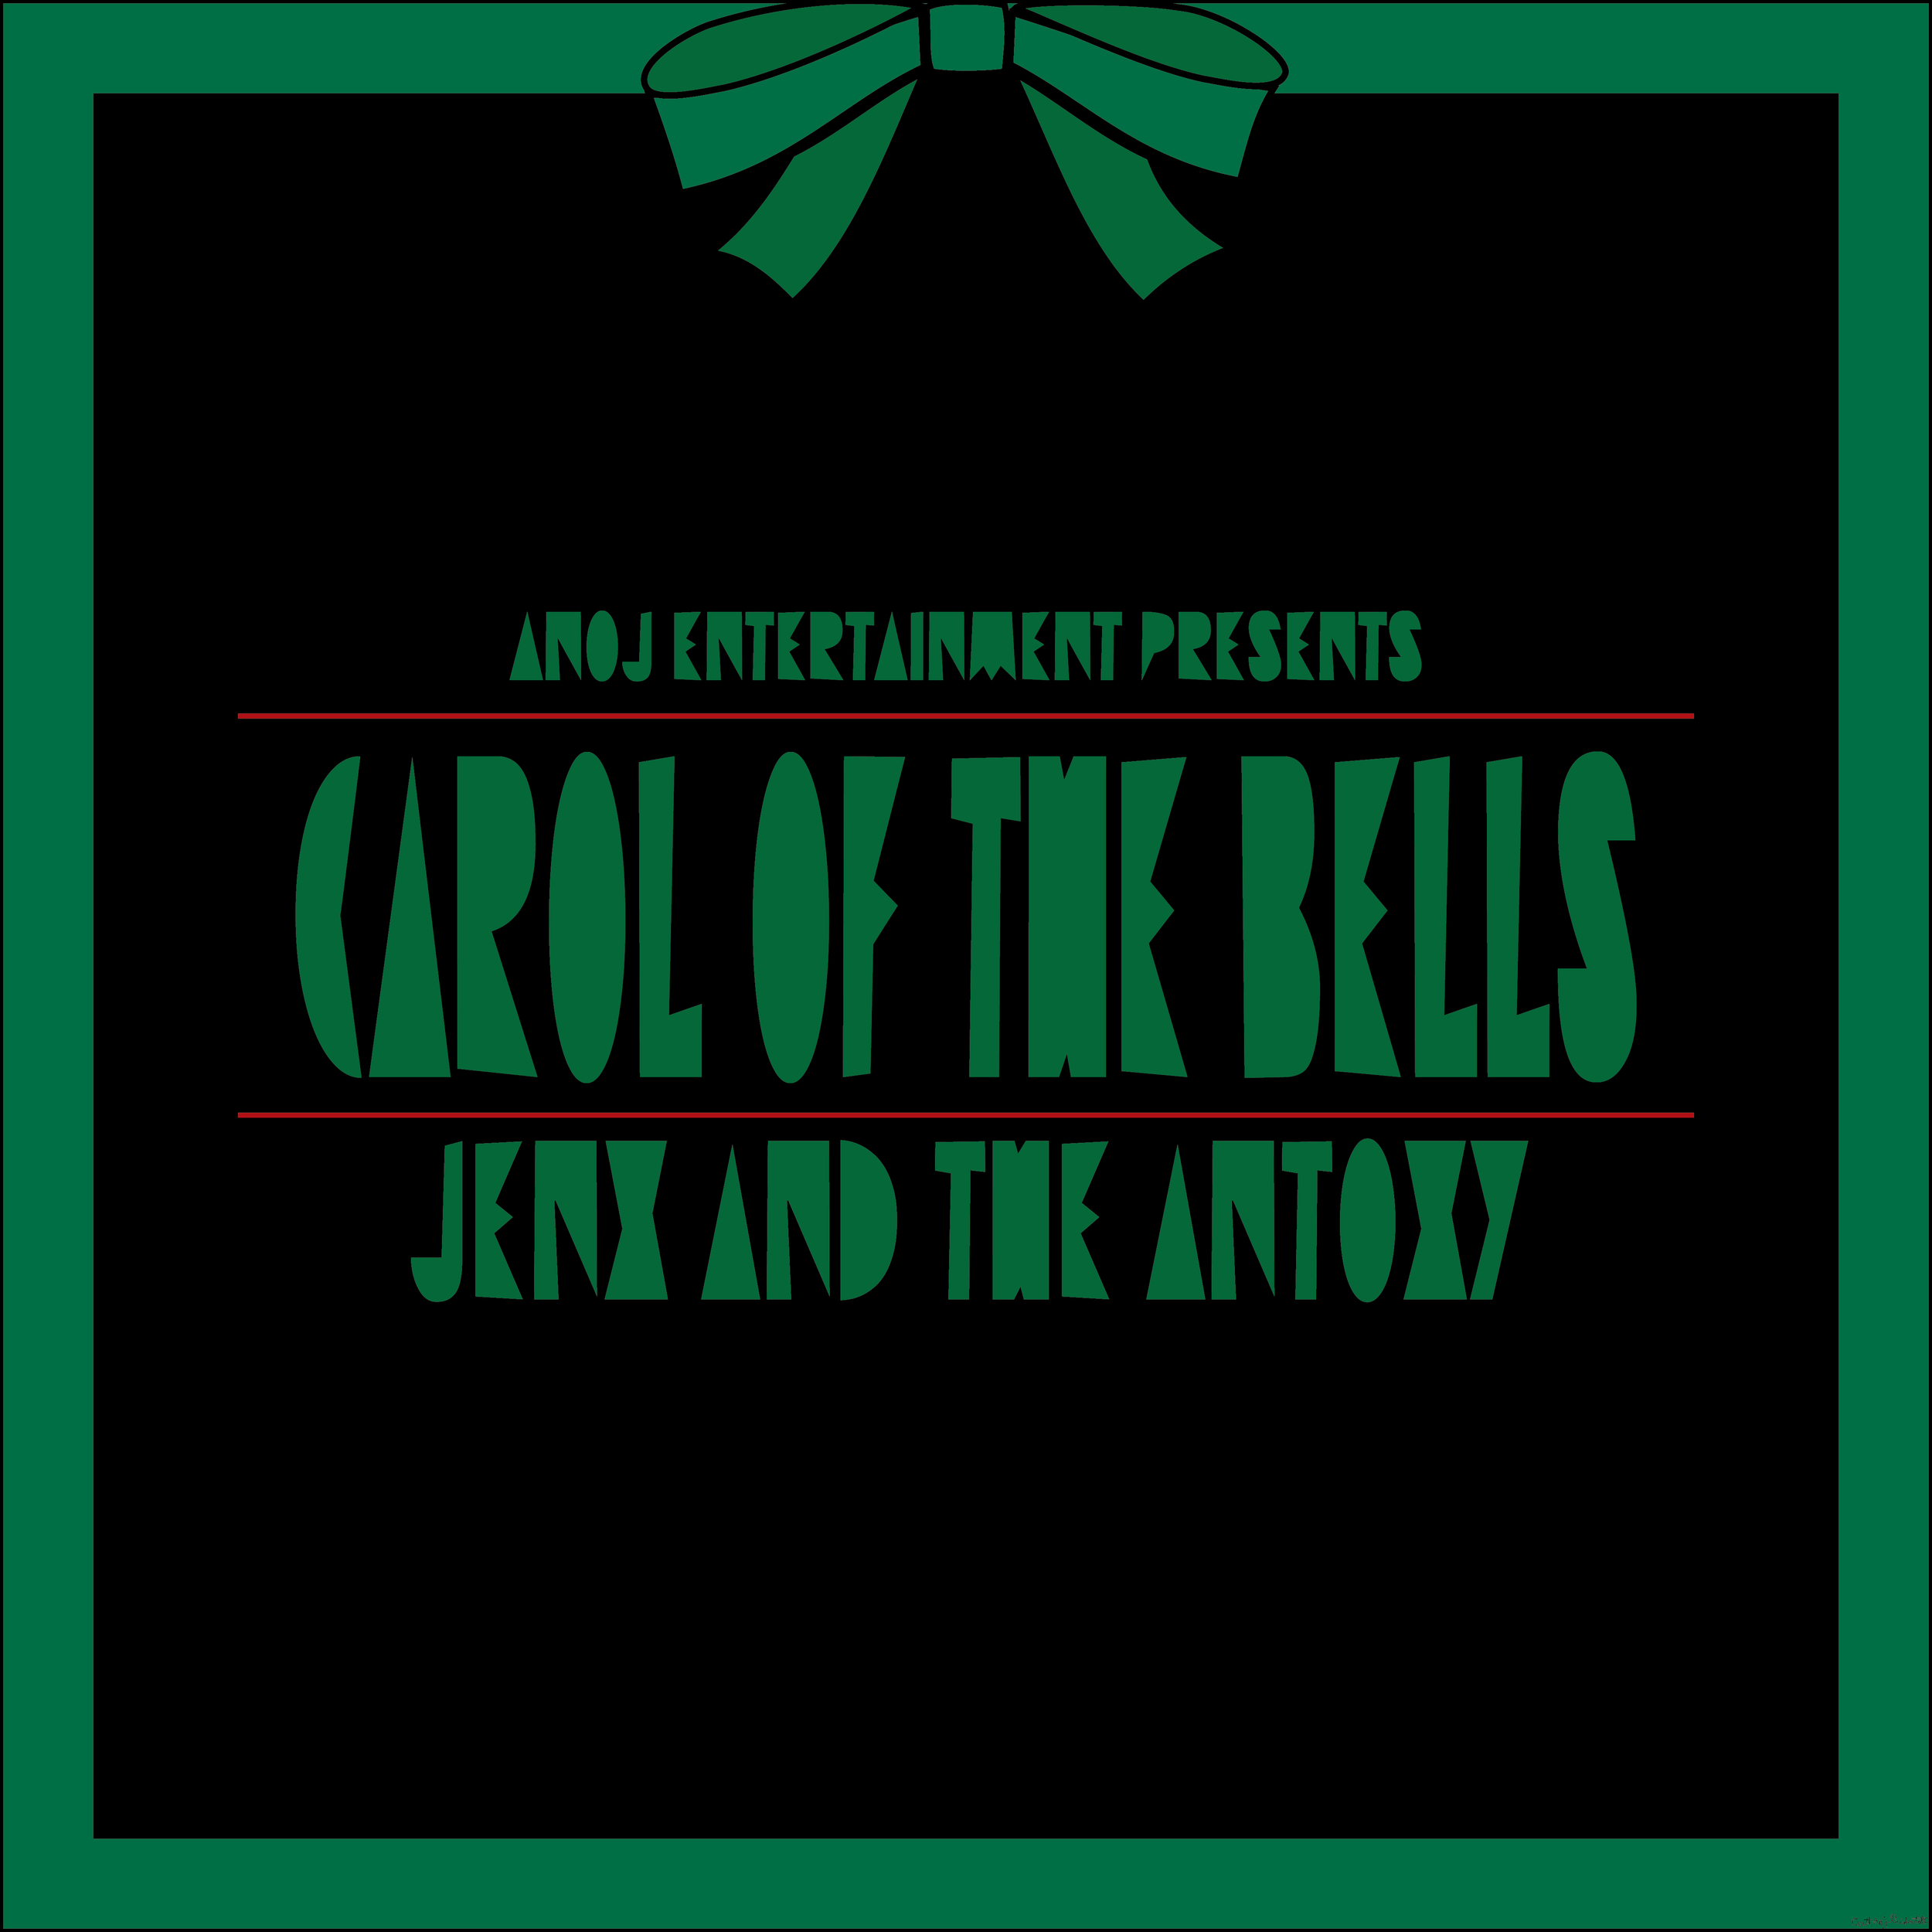 Carol of the bells AA-01.png